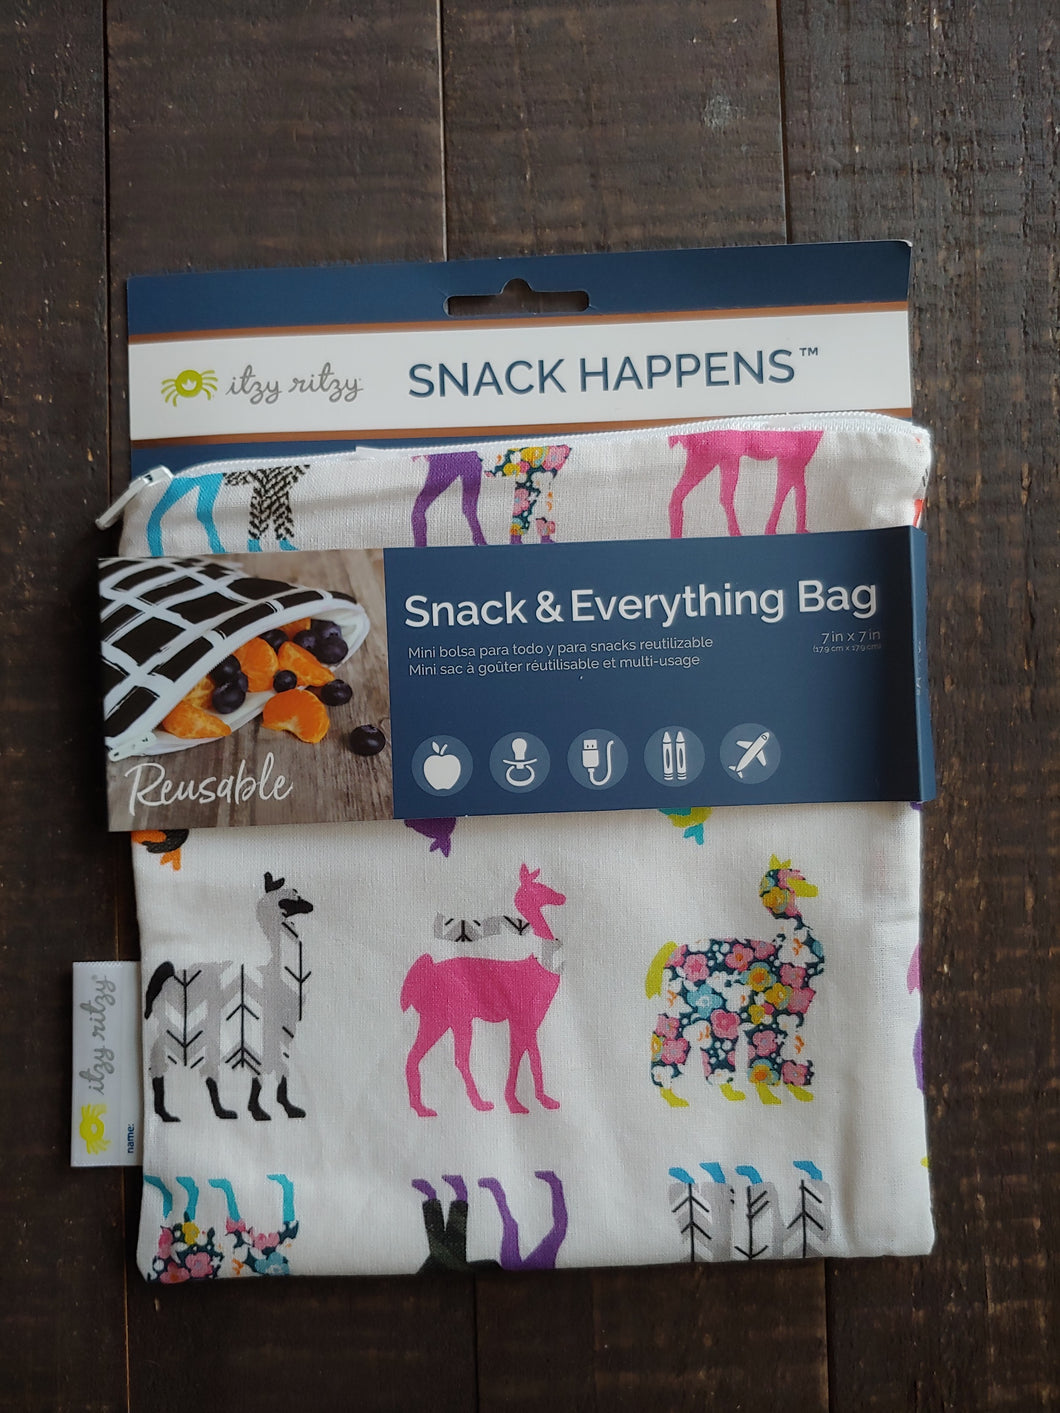 Llama Gllama Snack + Everything Bag ll Travel Bag ll Storage Bag 1 Pack - SimplyGinger